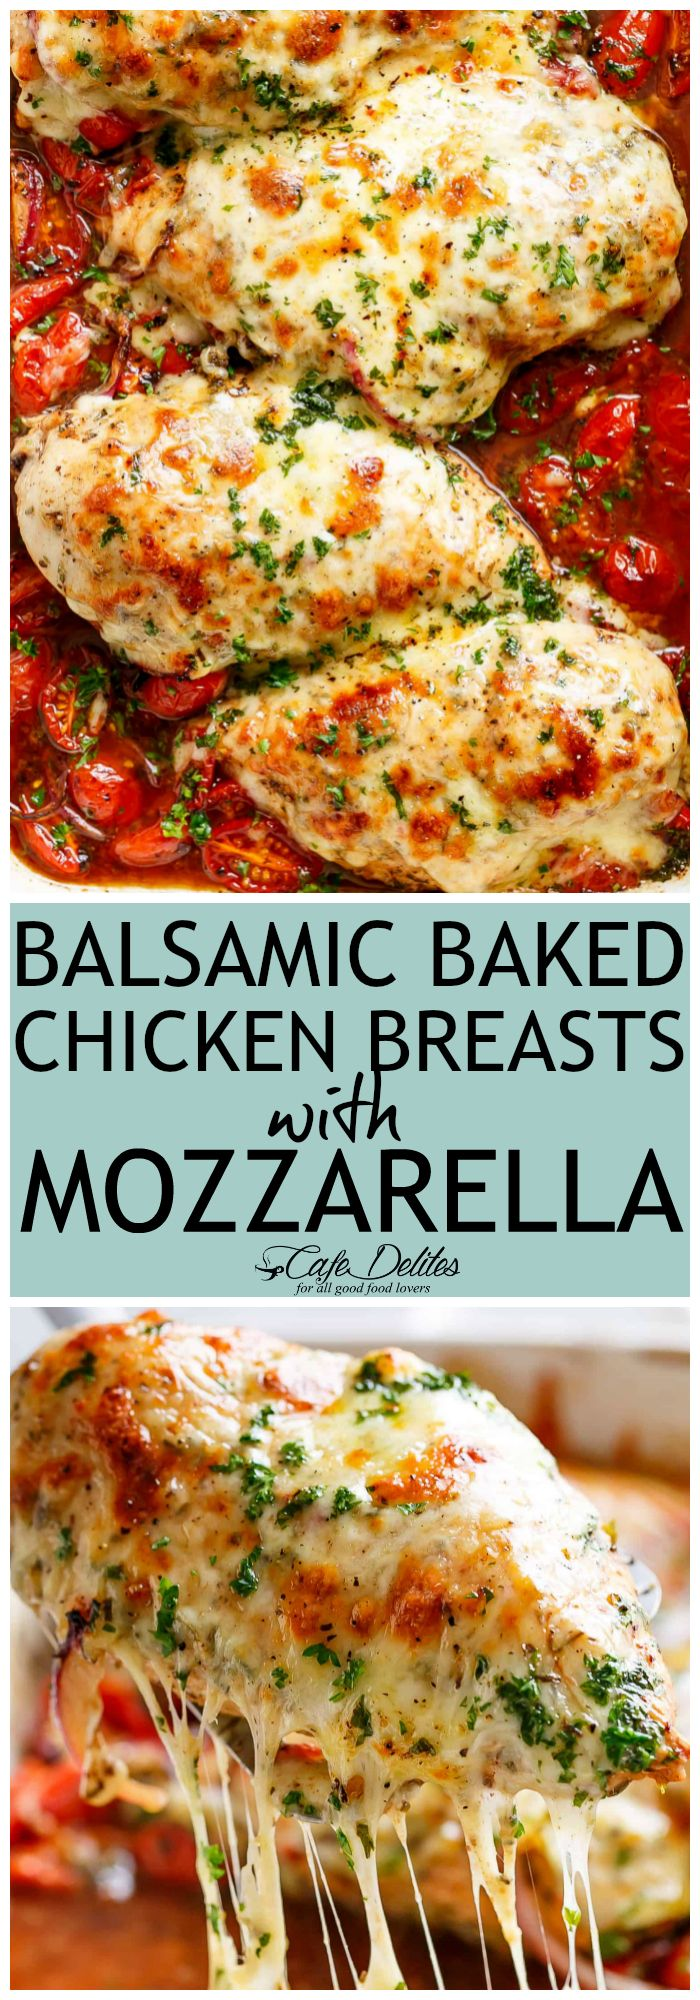 Balsamic Baked Chicken Breast rubbed with garlic and herbs, dripping with a tomato balsamic sauce and melted mozzarella cheese! It doesn't get any better than this EASY chicken recipe! Let your oven do ALL the work and have the most delicious Baked Chicken on your tablein less than 30 minutes!